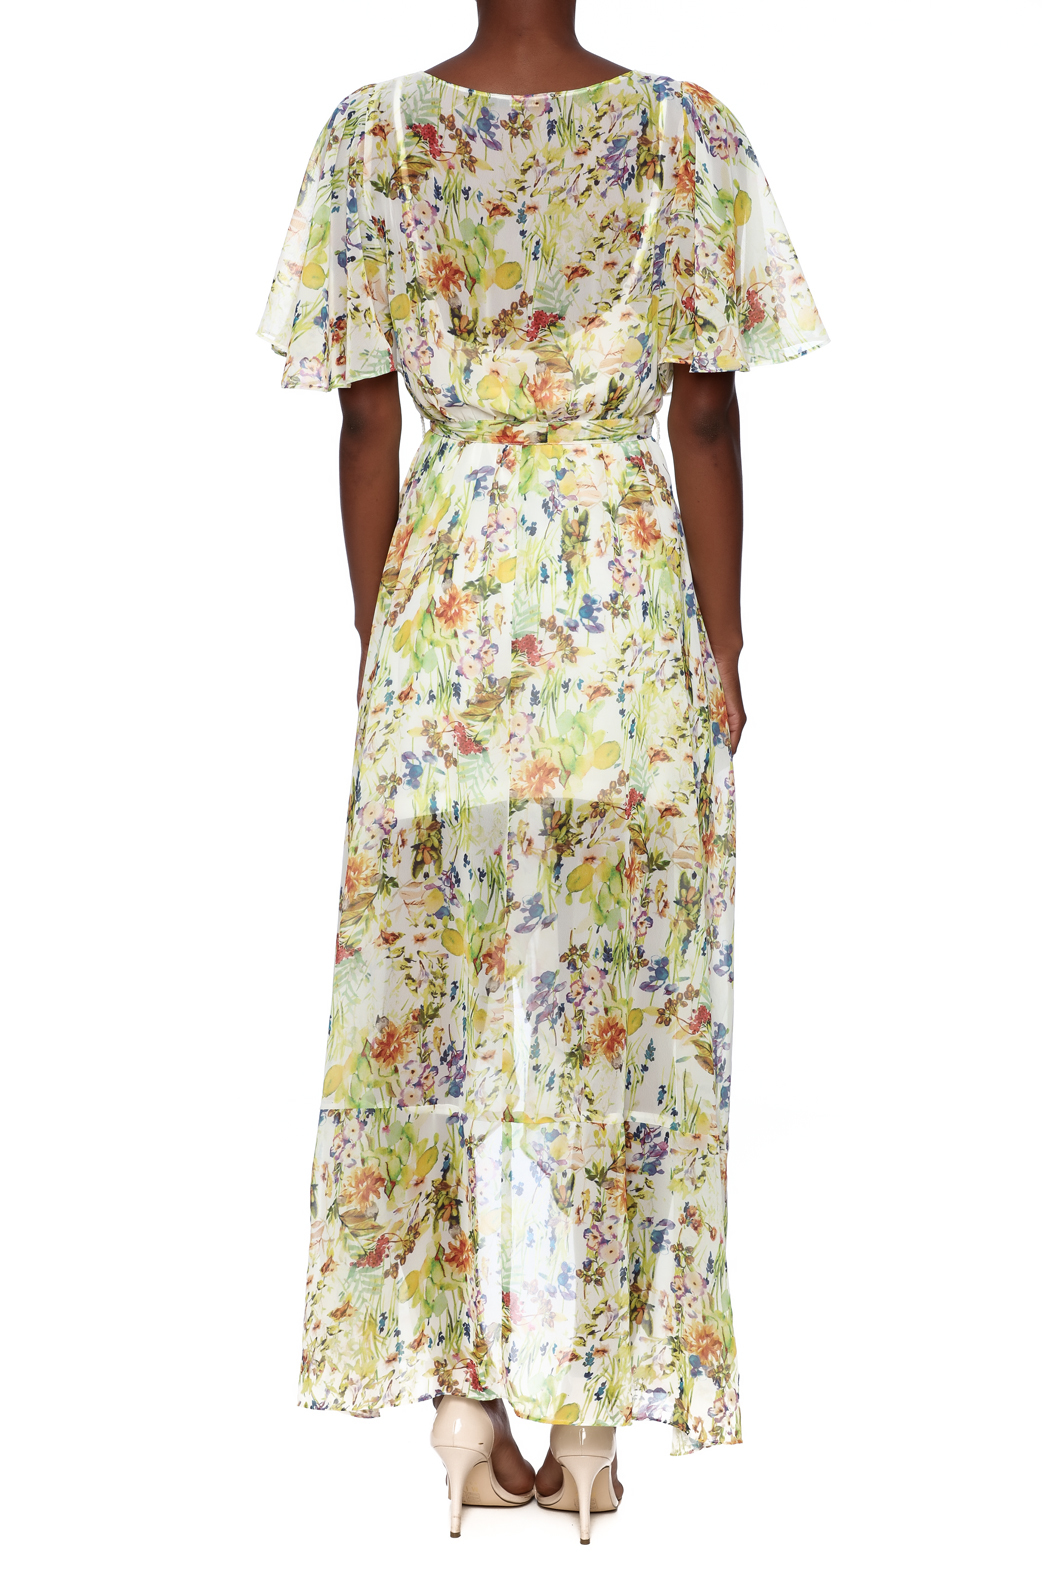 Ark & Co. Floral Wing Maxi Dress - Back Cropped Image